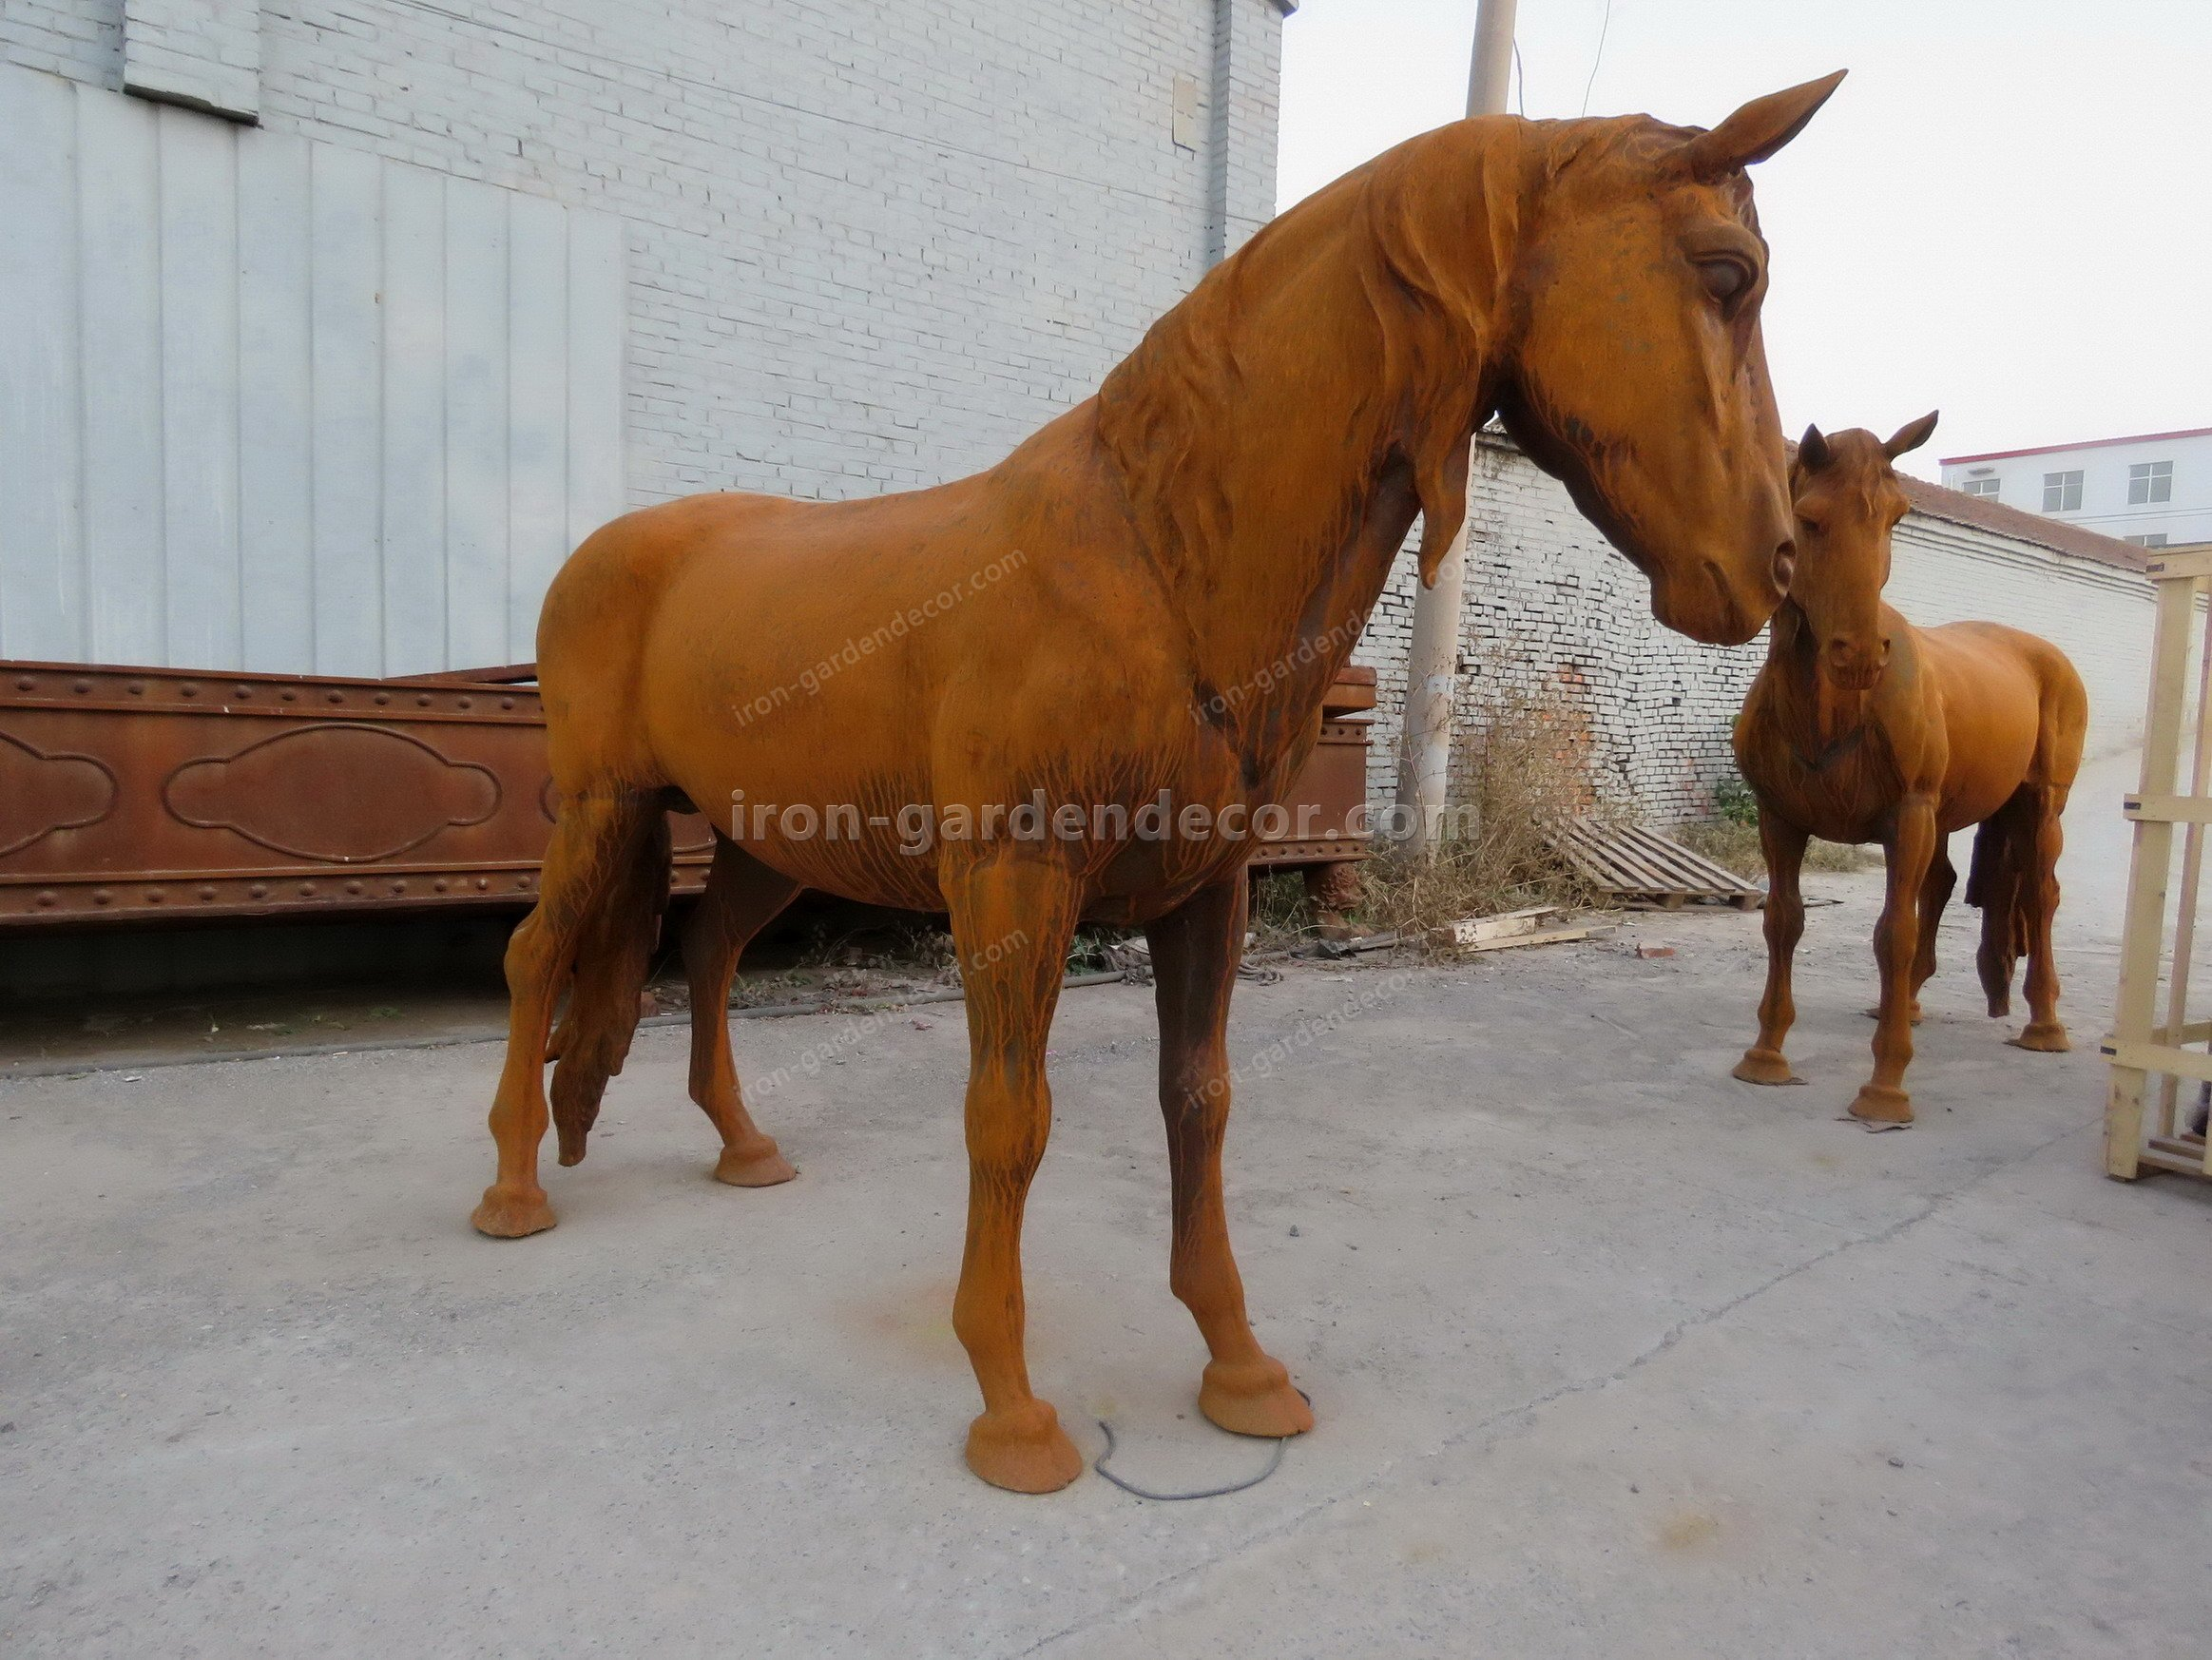 normal size cast iron animal of horse garden animal, large horse animal-SS6027 (3)